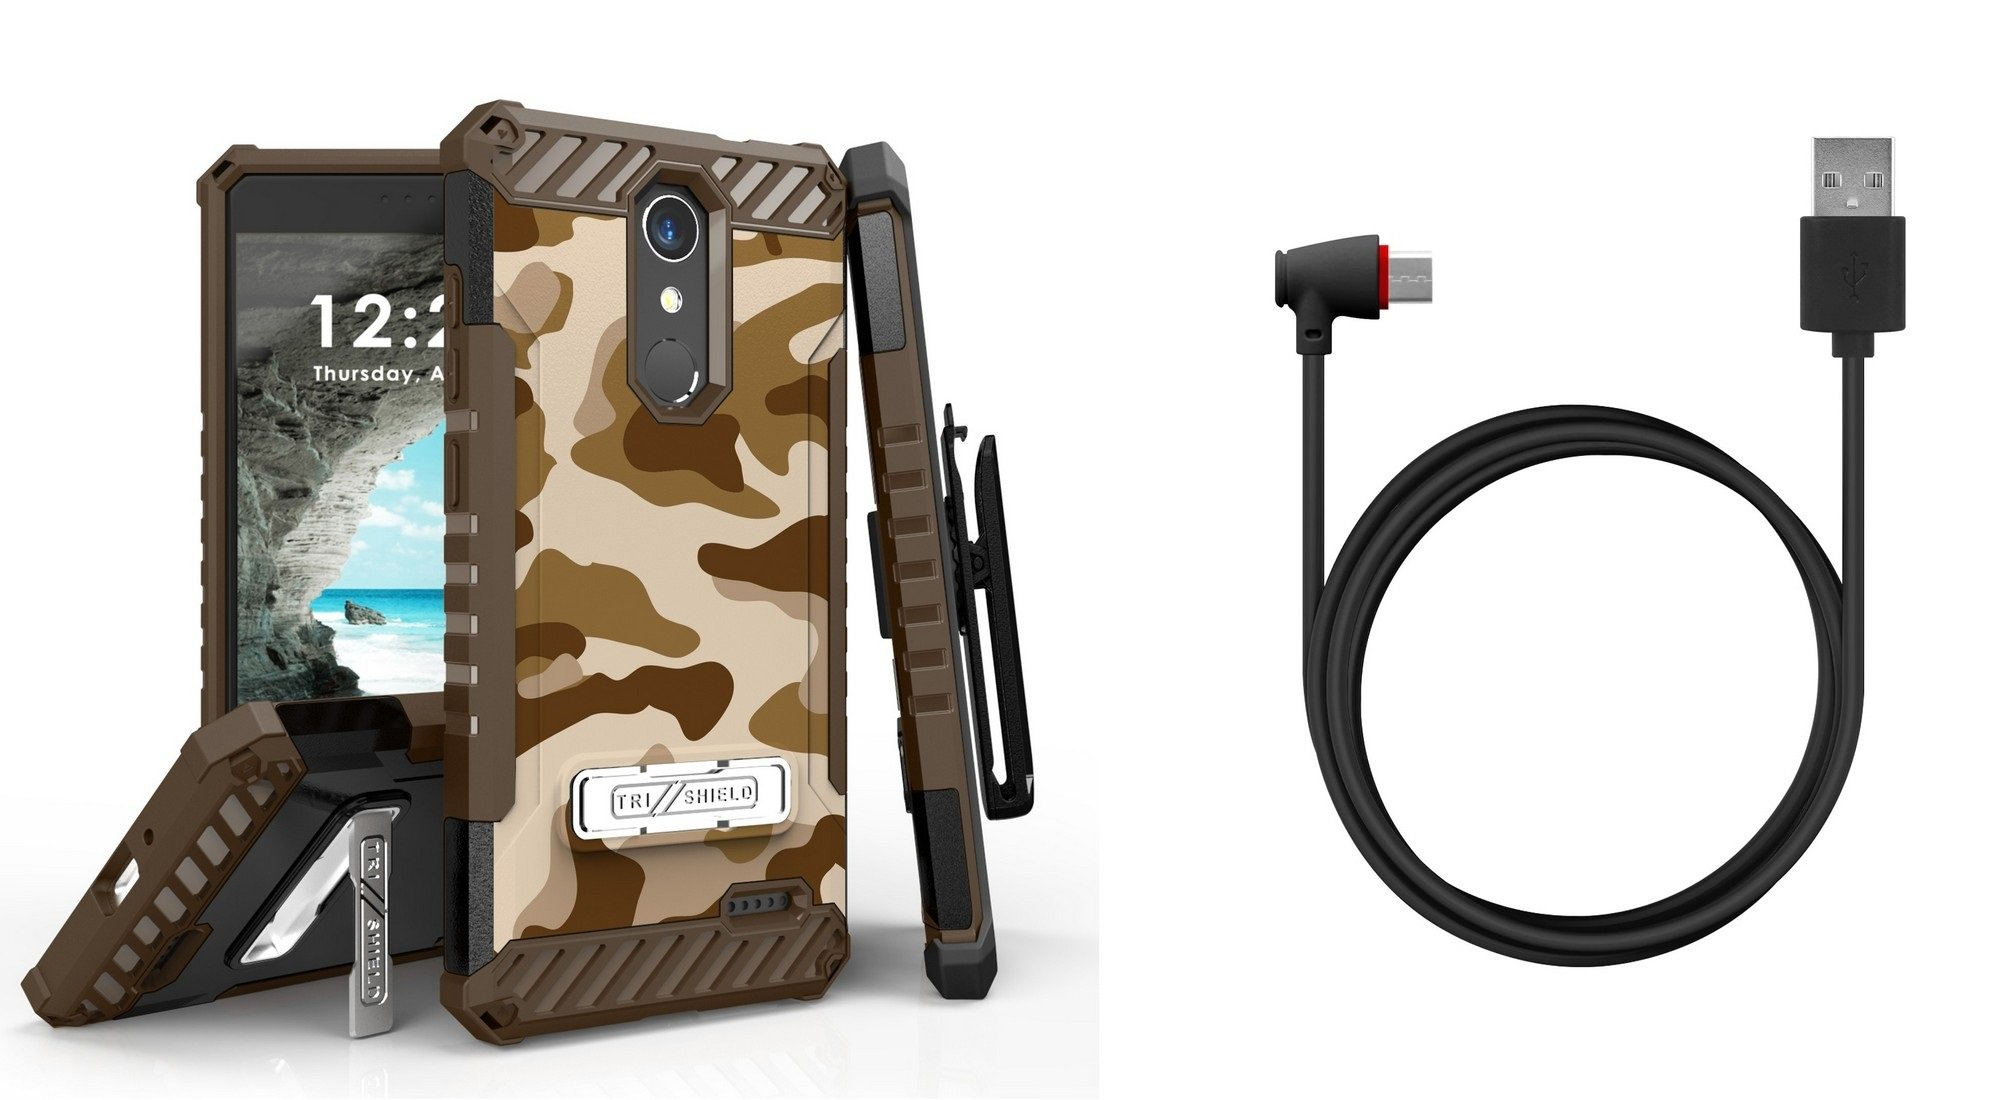 Tri-Shield Military Grade Case Bundle with Belt Clip Holster (Desert Camo), [90 Degree/Right Angle] USB Type C Cable [4 Foot], Atom Cloth for ZTE Blade Spark, ZTE ZMAX One LTE, ZTE Grand X 4